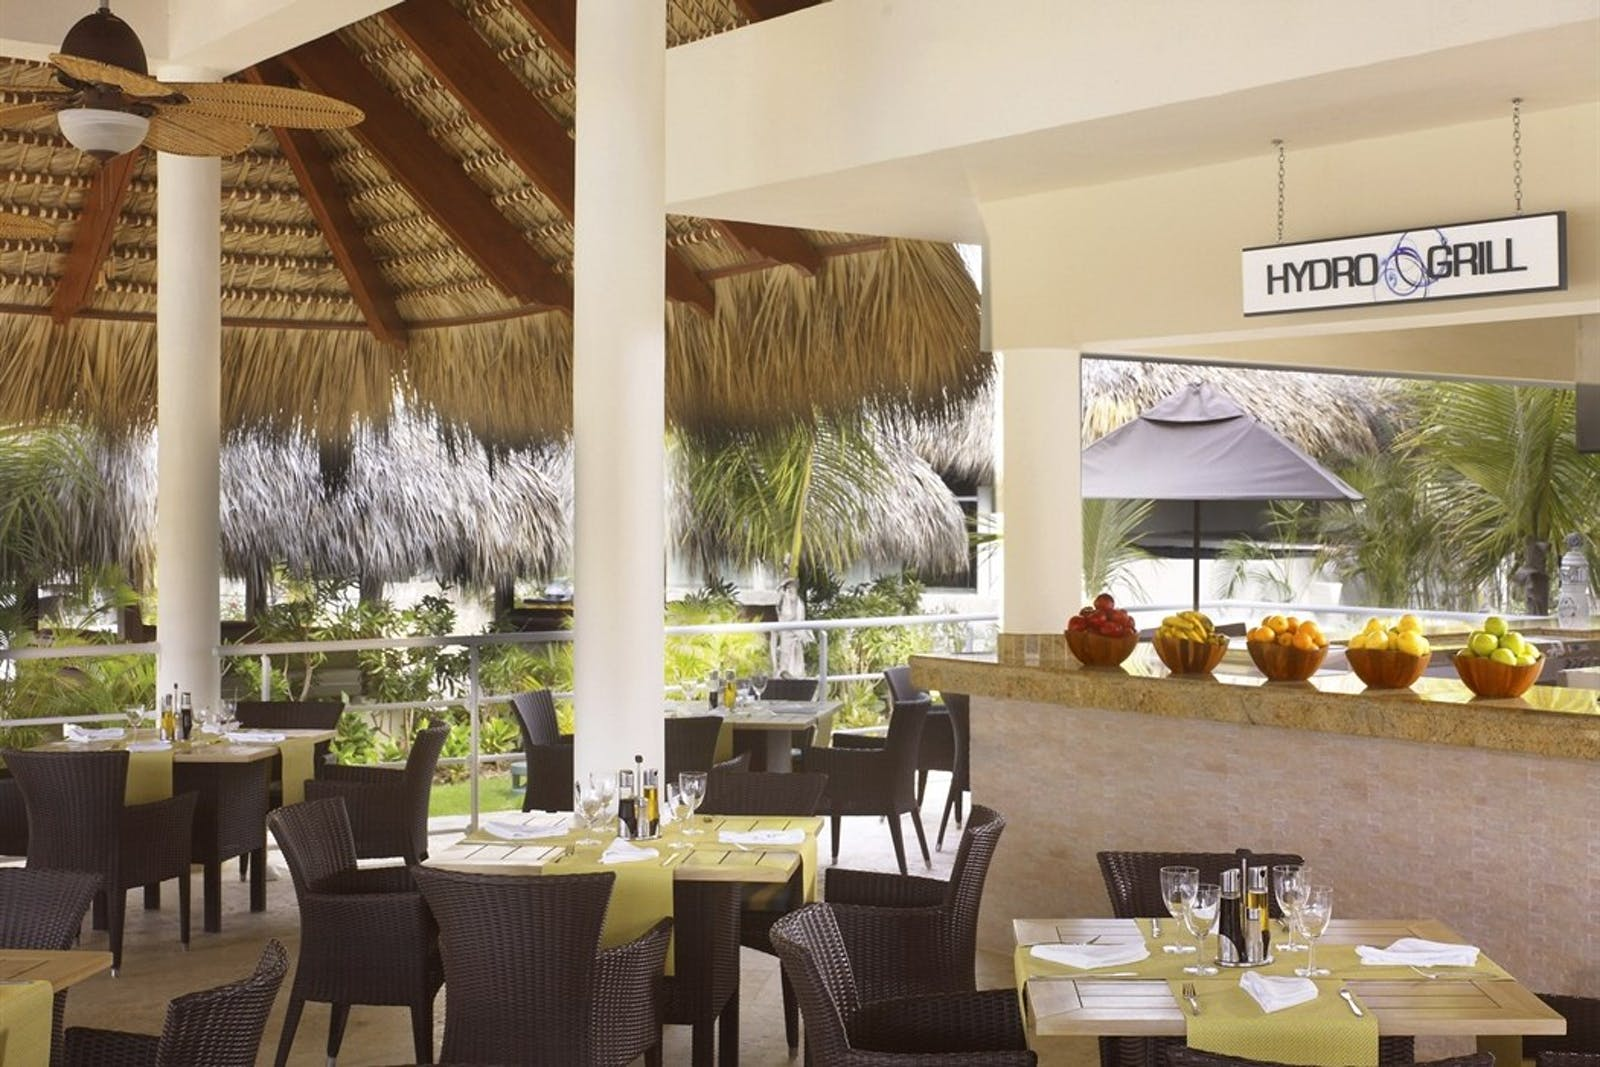 Hydro Grill at The Reserve at Paradisus Palma Real, Dominican Republic